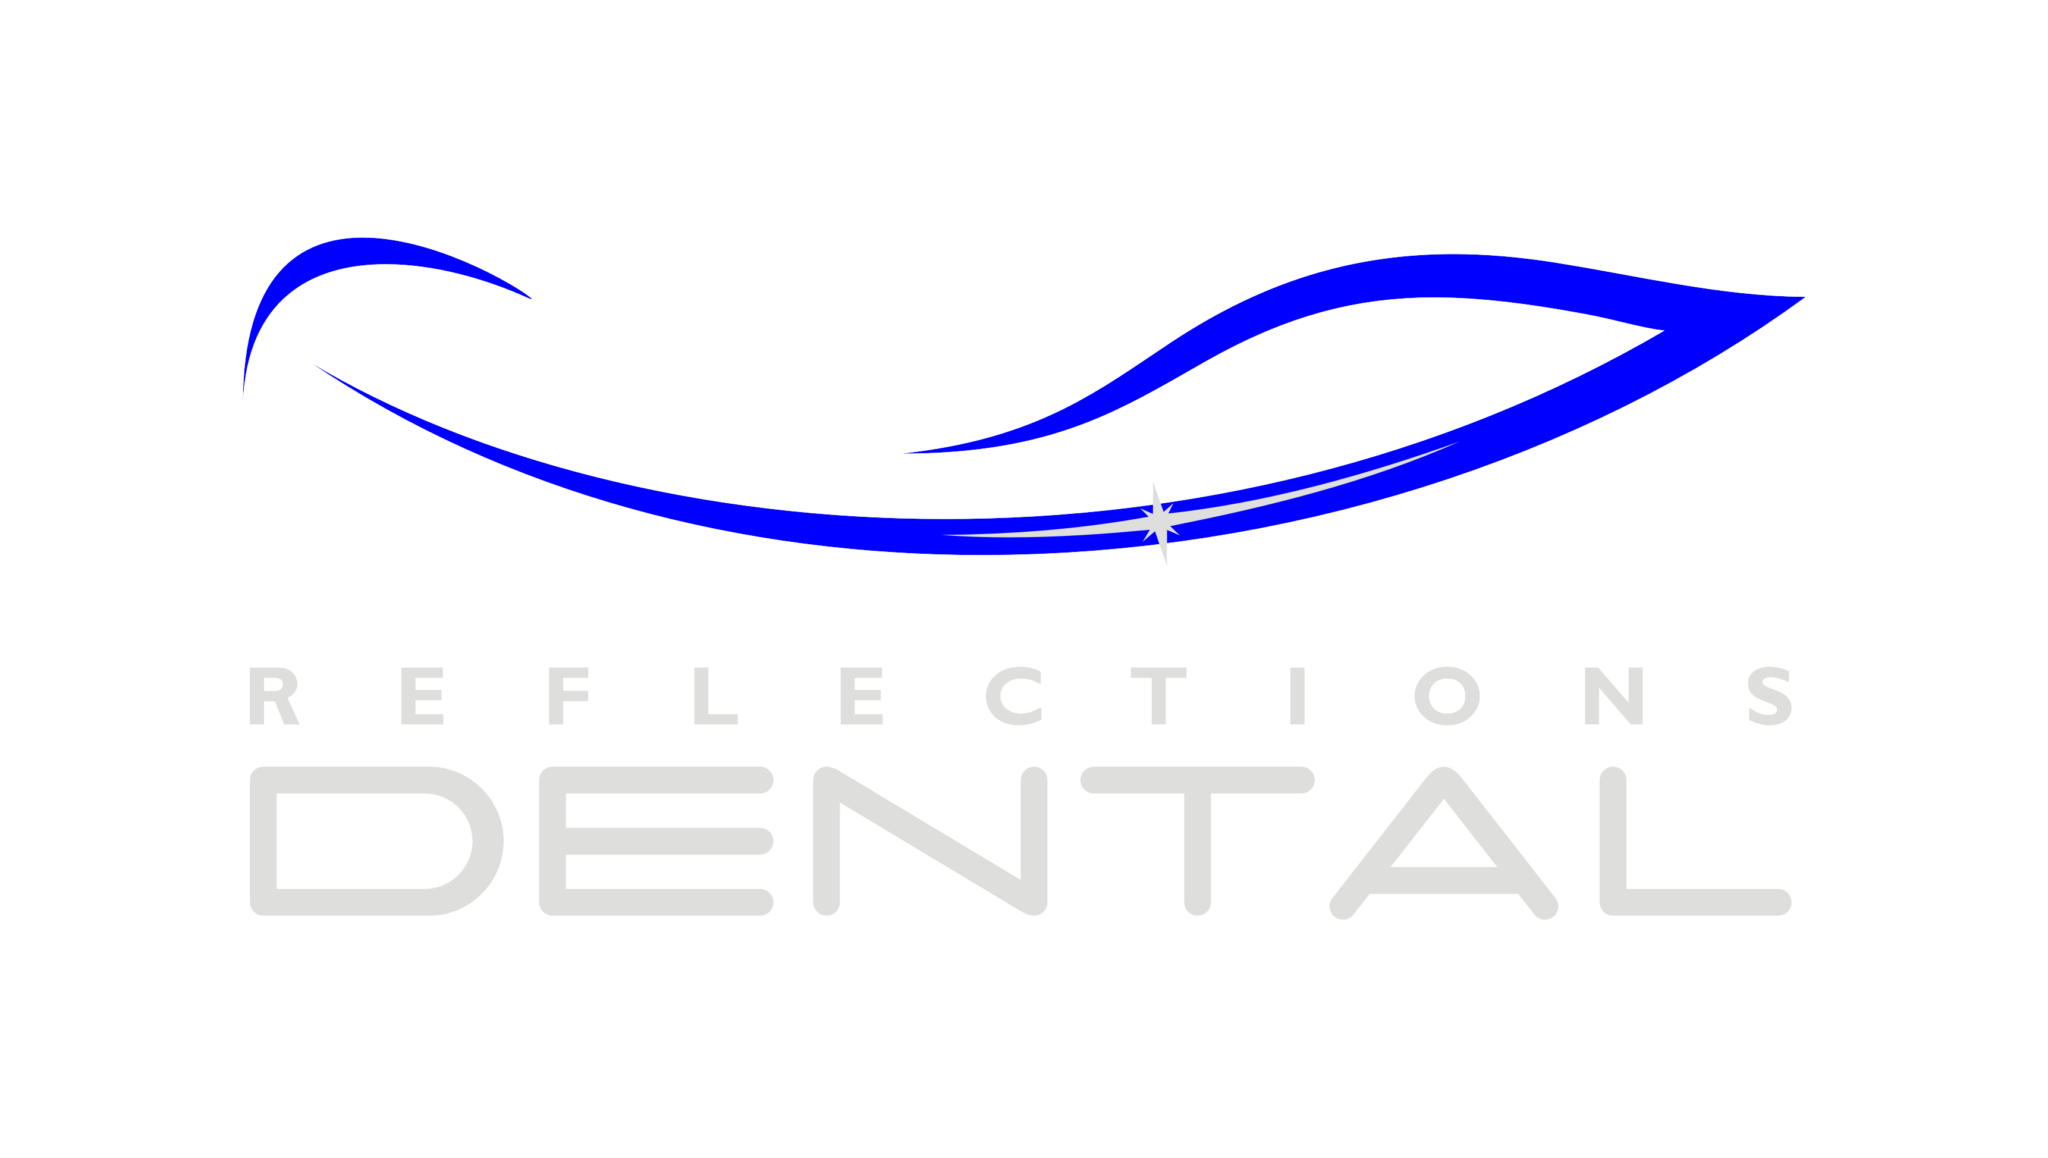 Reflections Dental